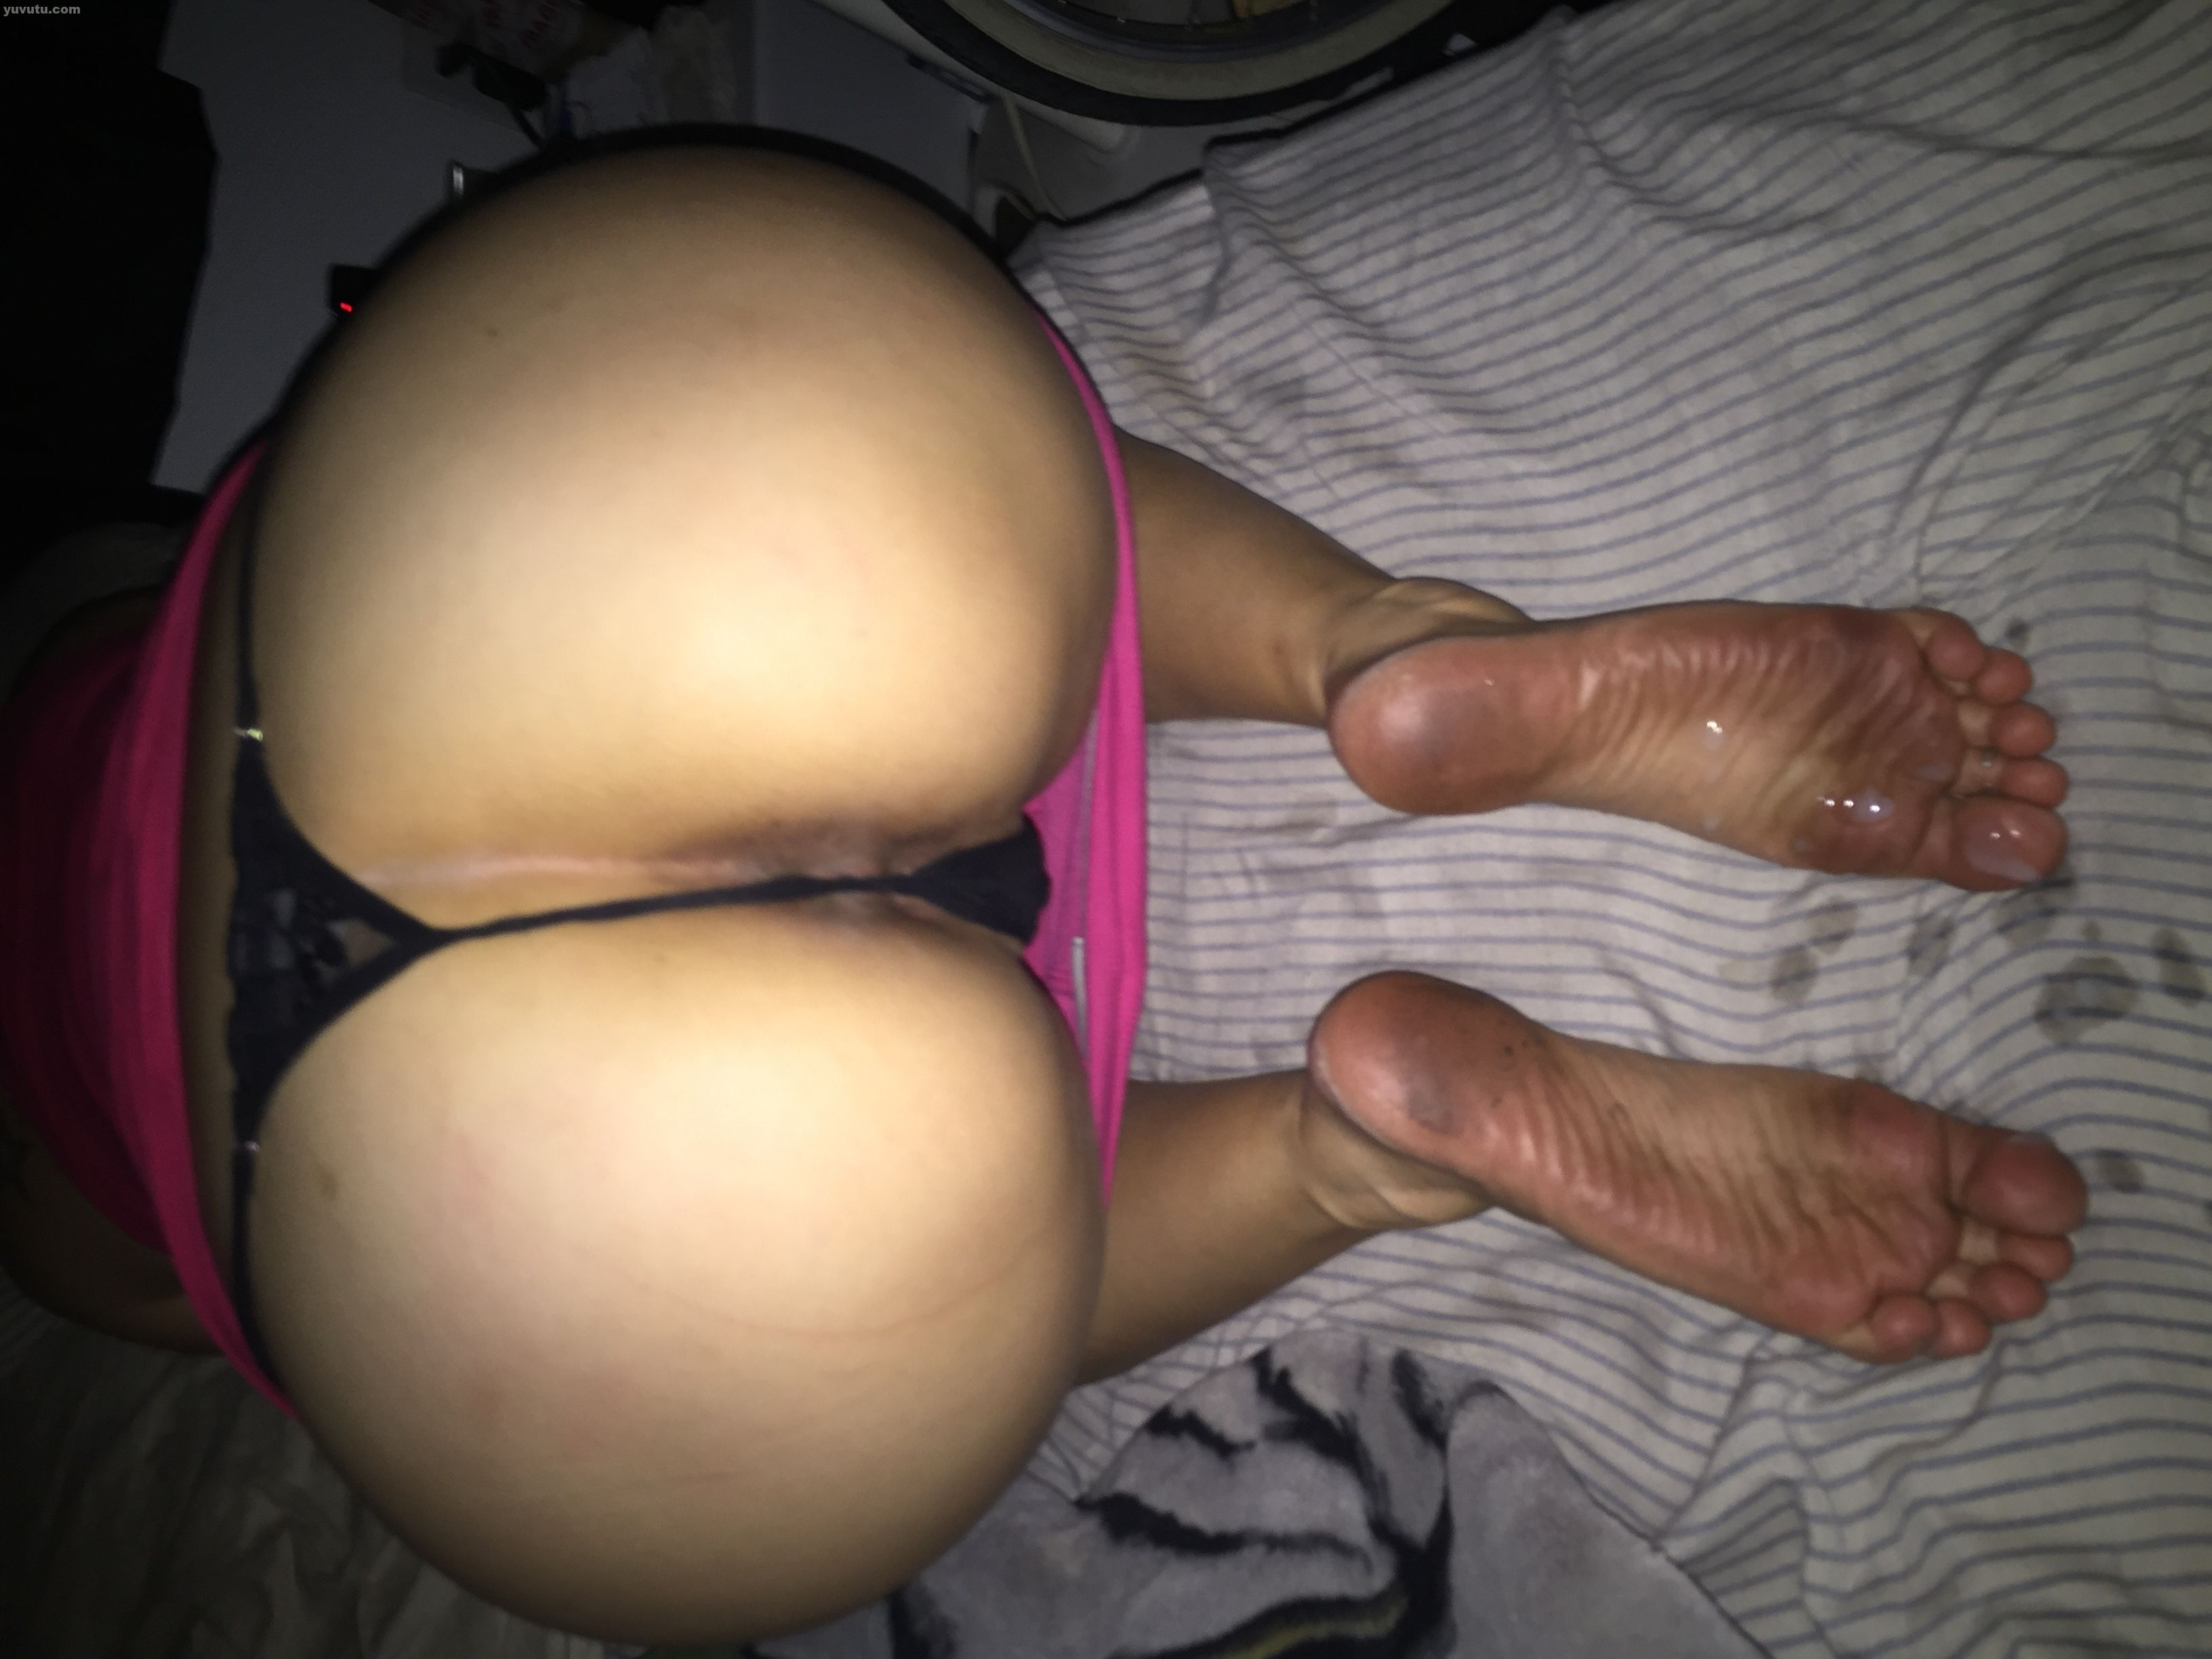 best of Amateur sex butts Housewife latina